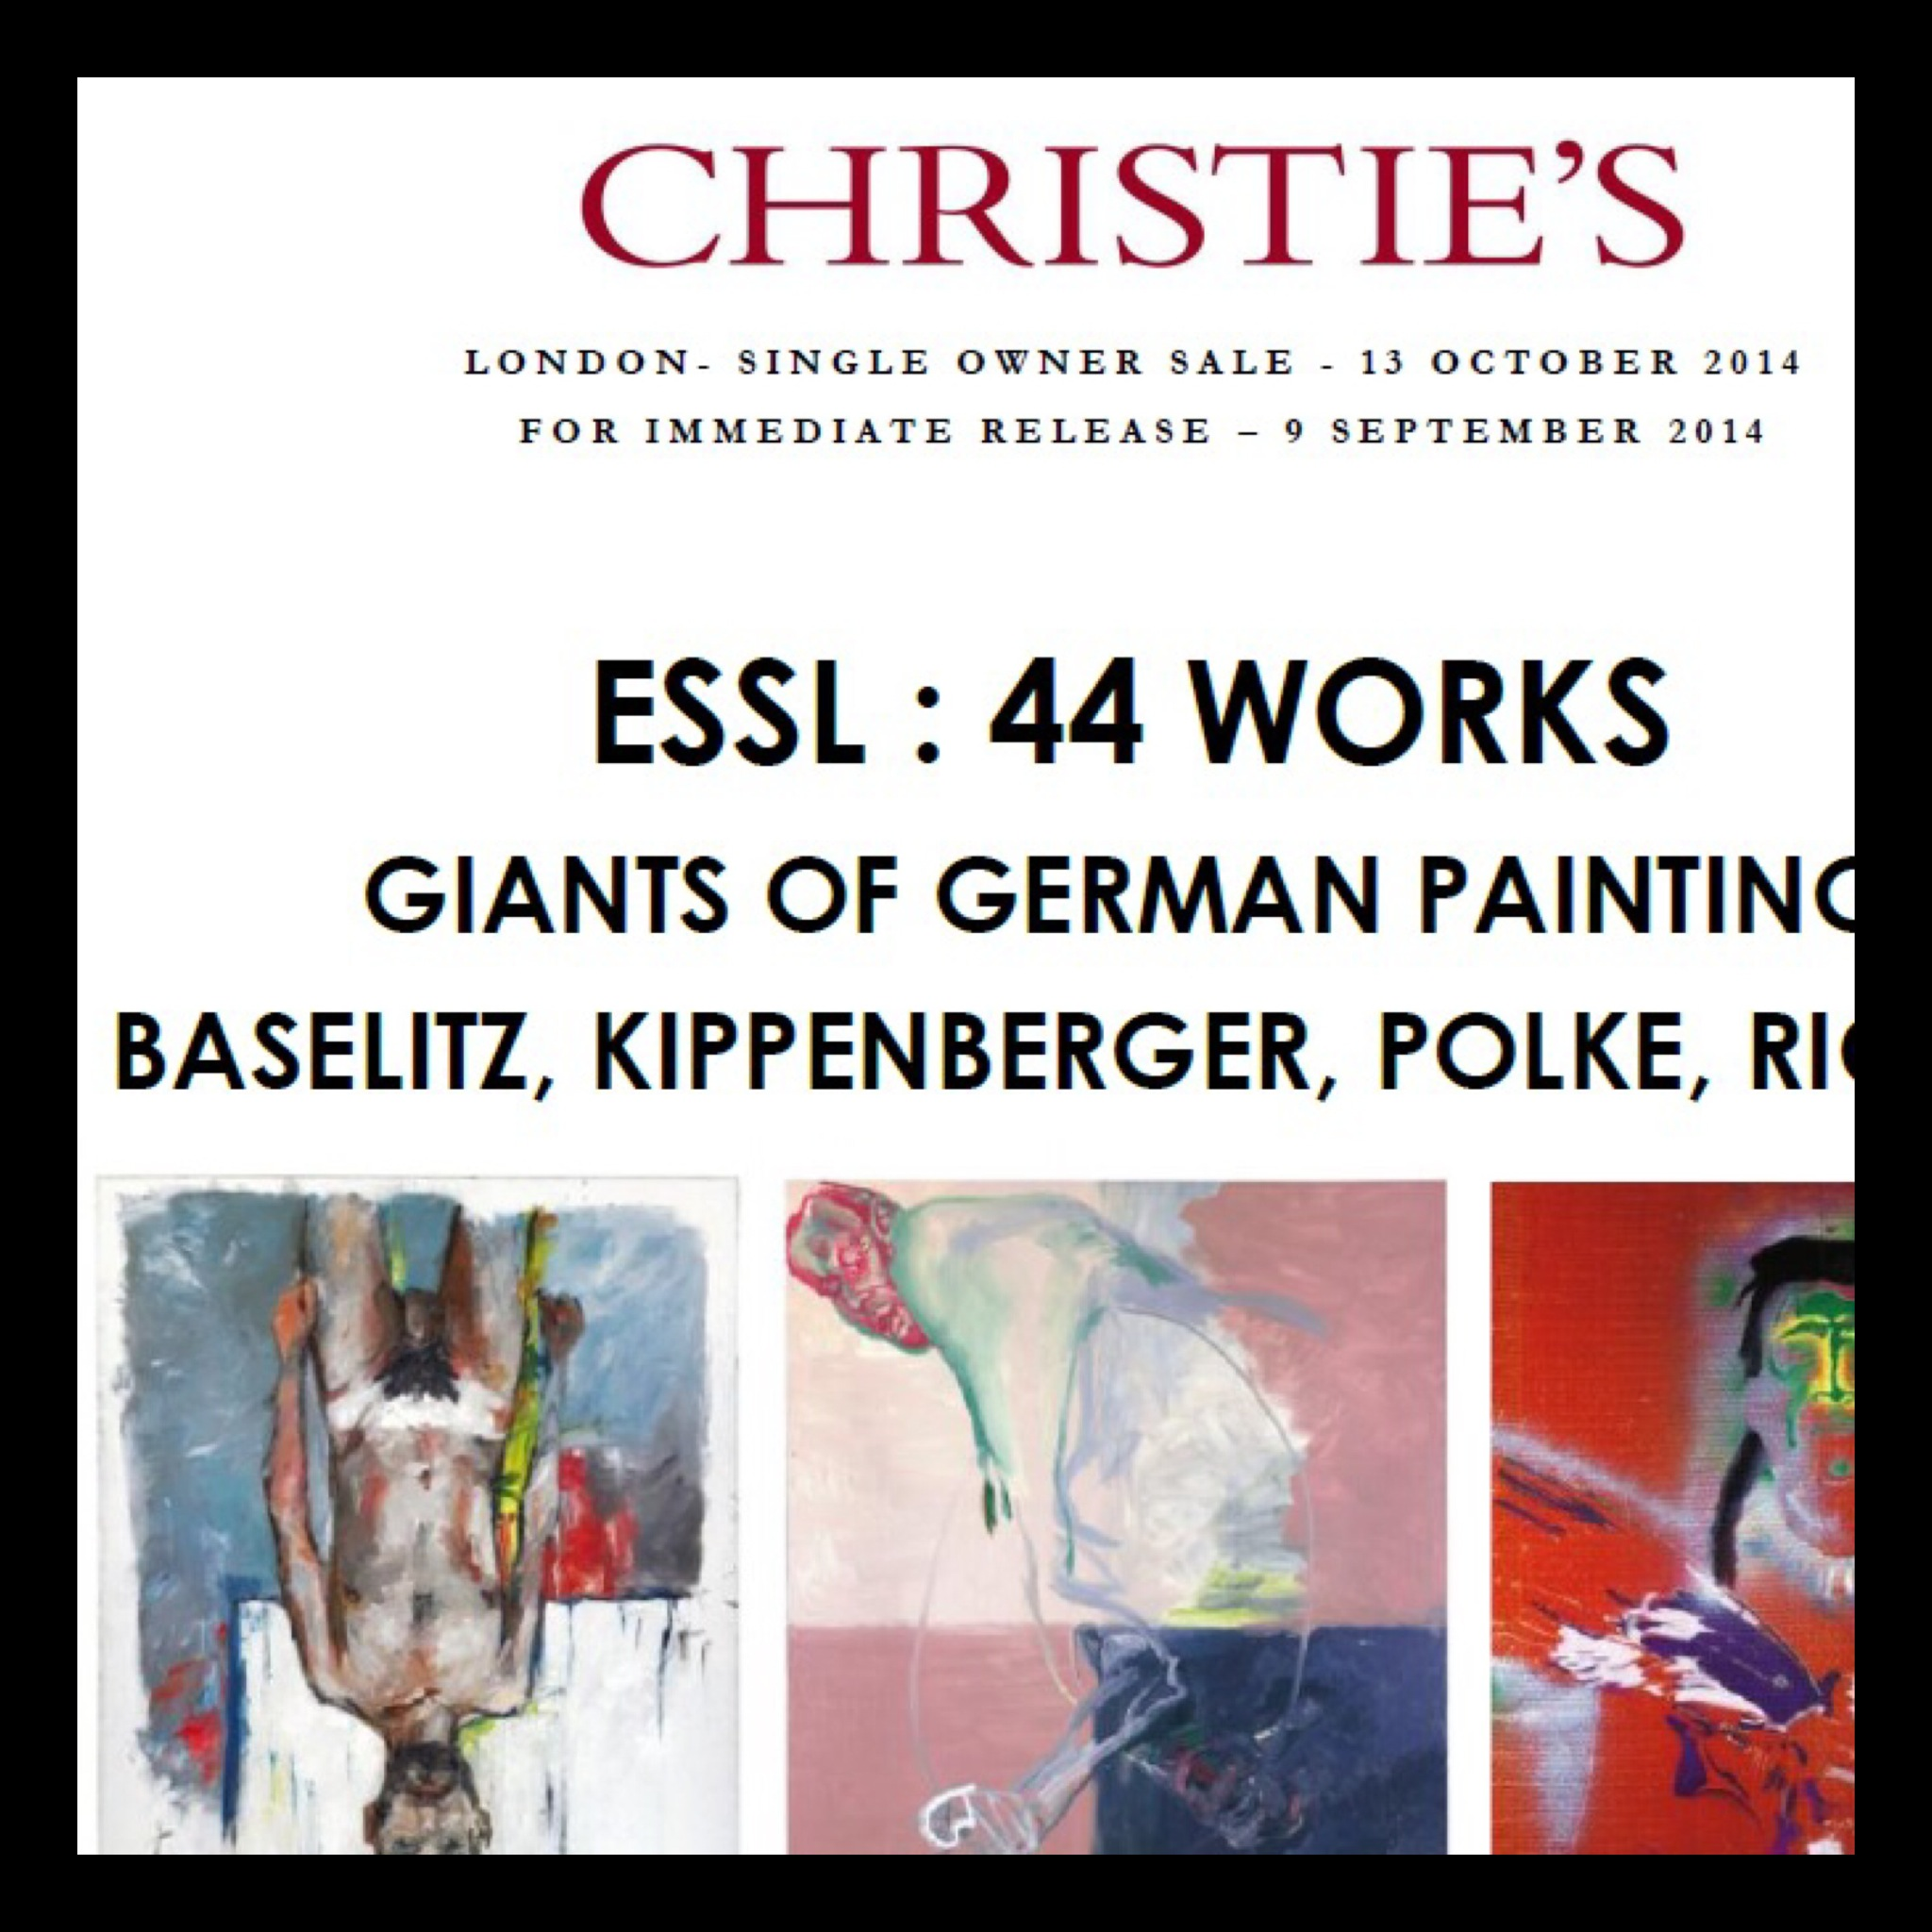 Christie's |44 works | The Essl Collection| stand-alone evening auction | London | Monday, 13 October 2014